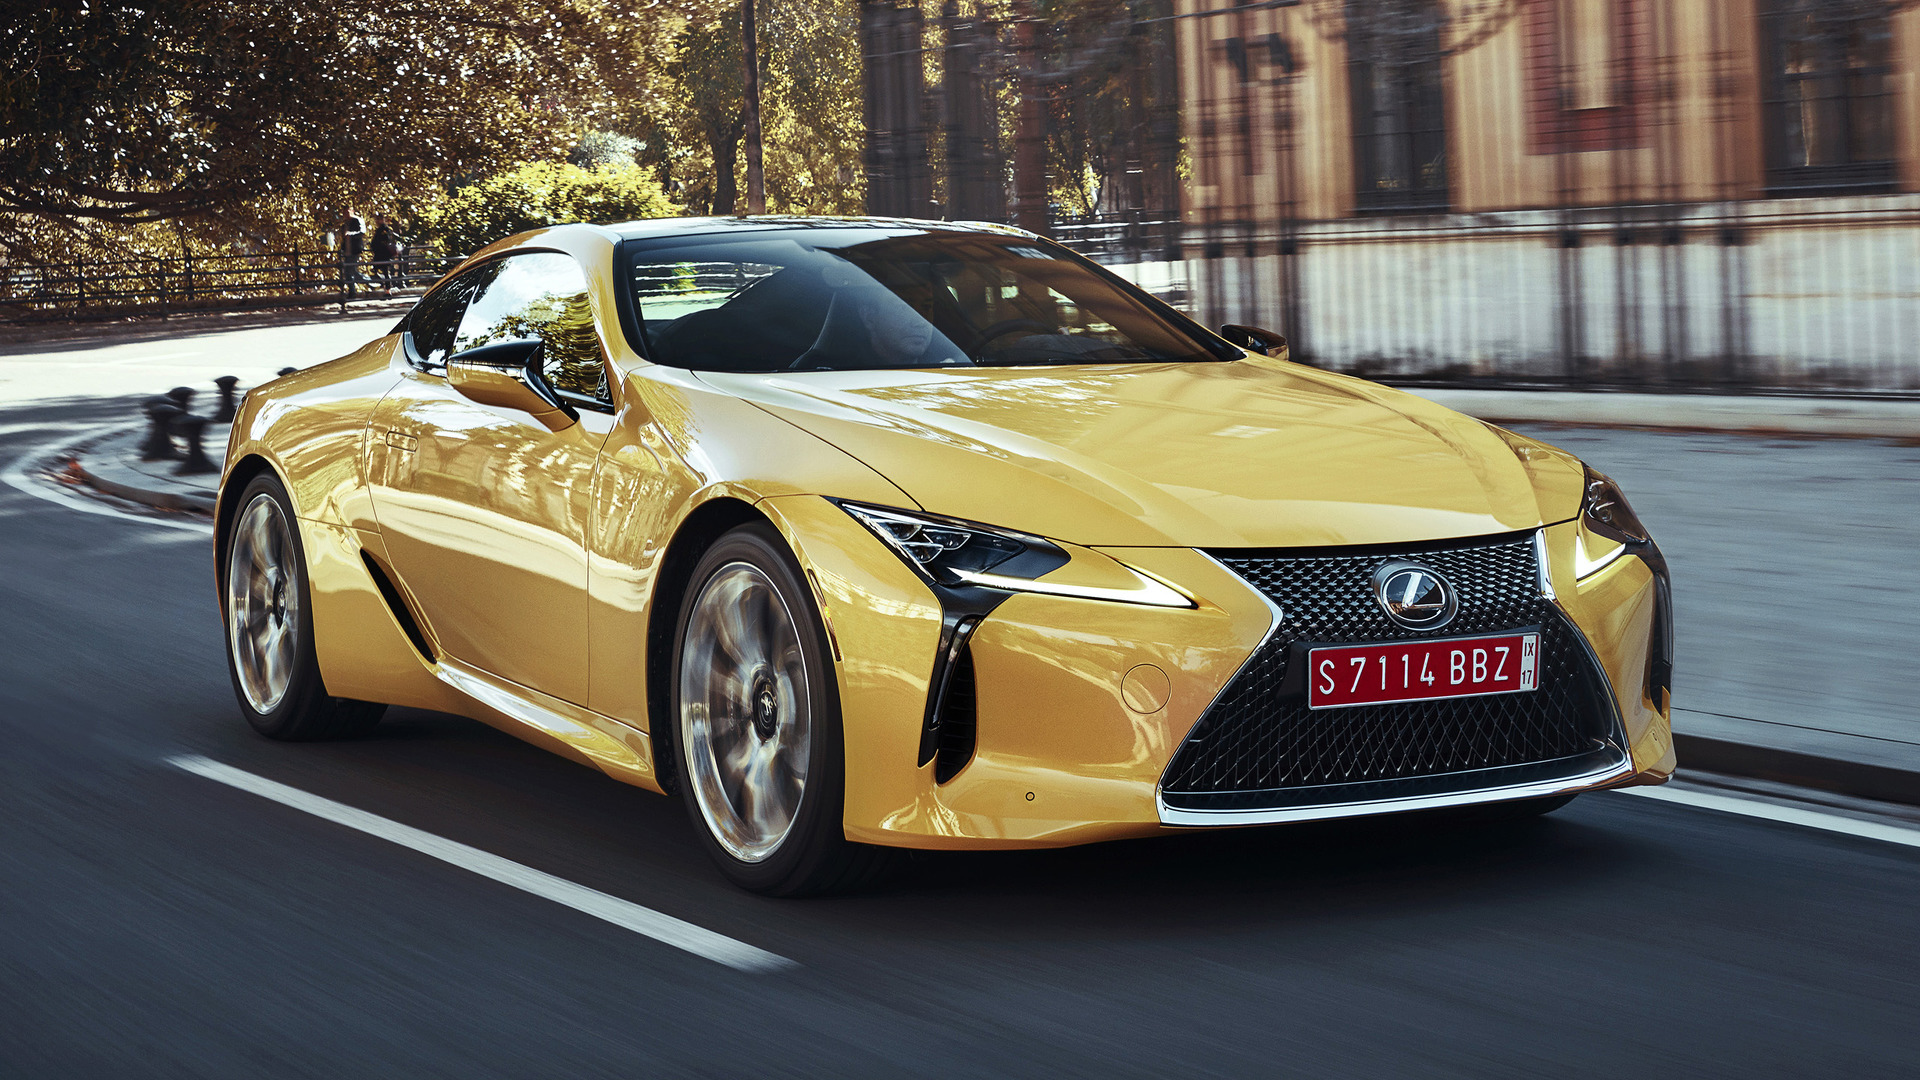 2018 Lexus Lc Pricing Announced Starts Below 100k